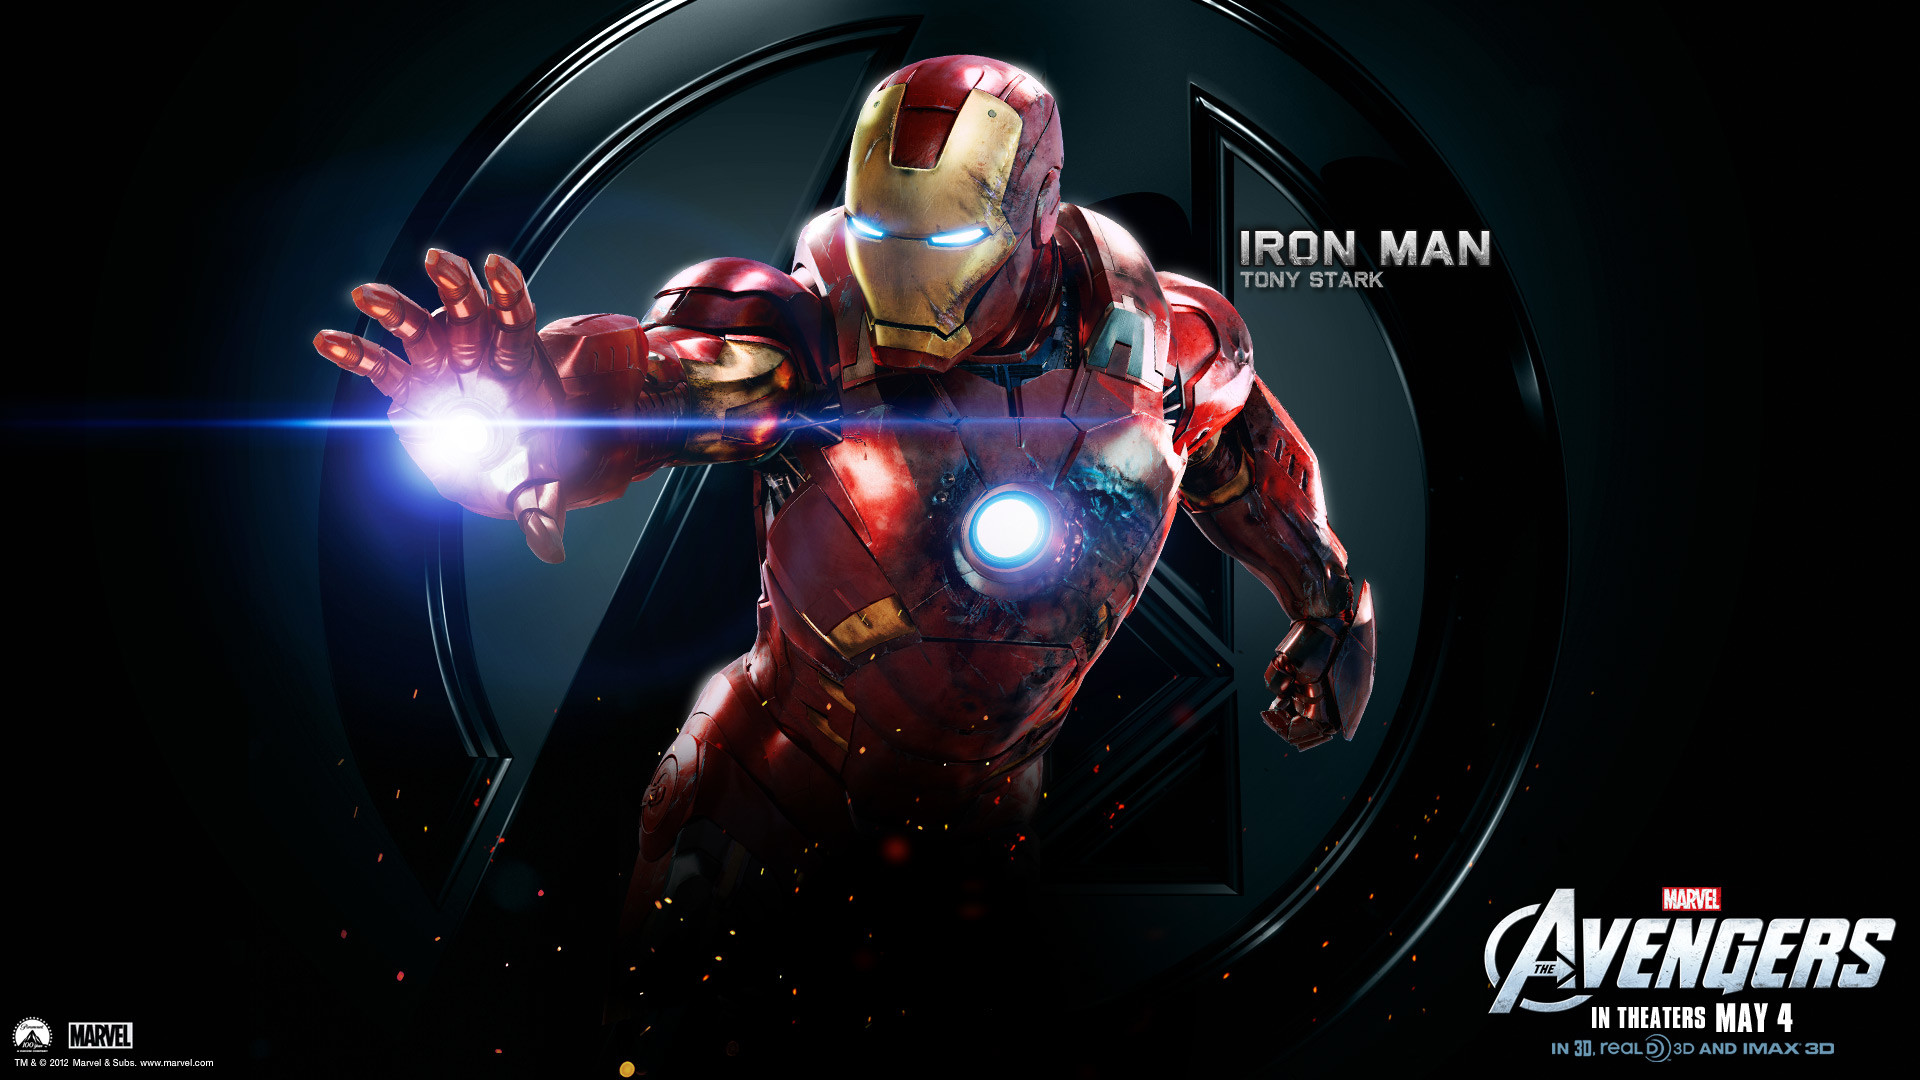 Iron Man in Avengers Movie wallpapers (78 Wallpapers)